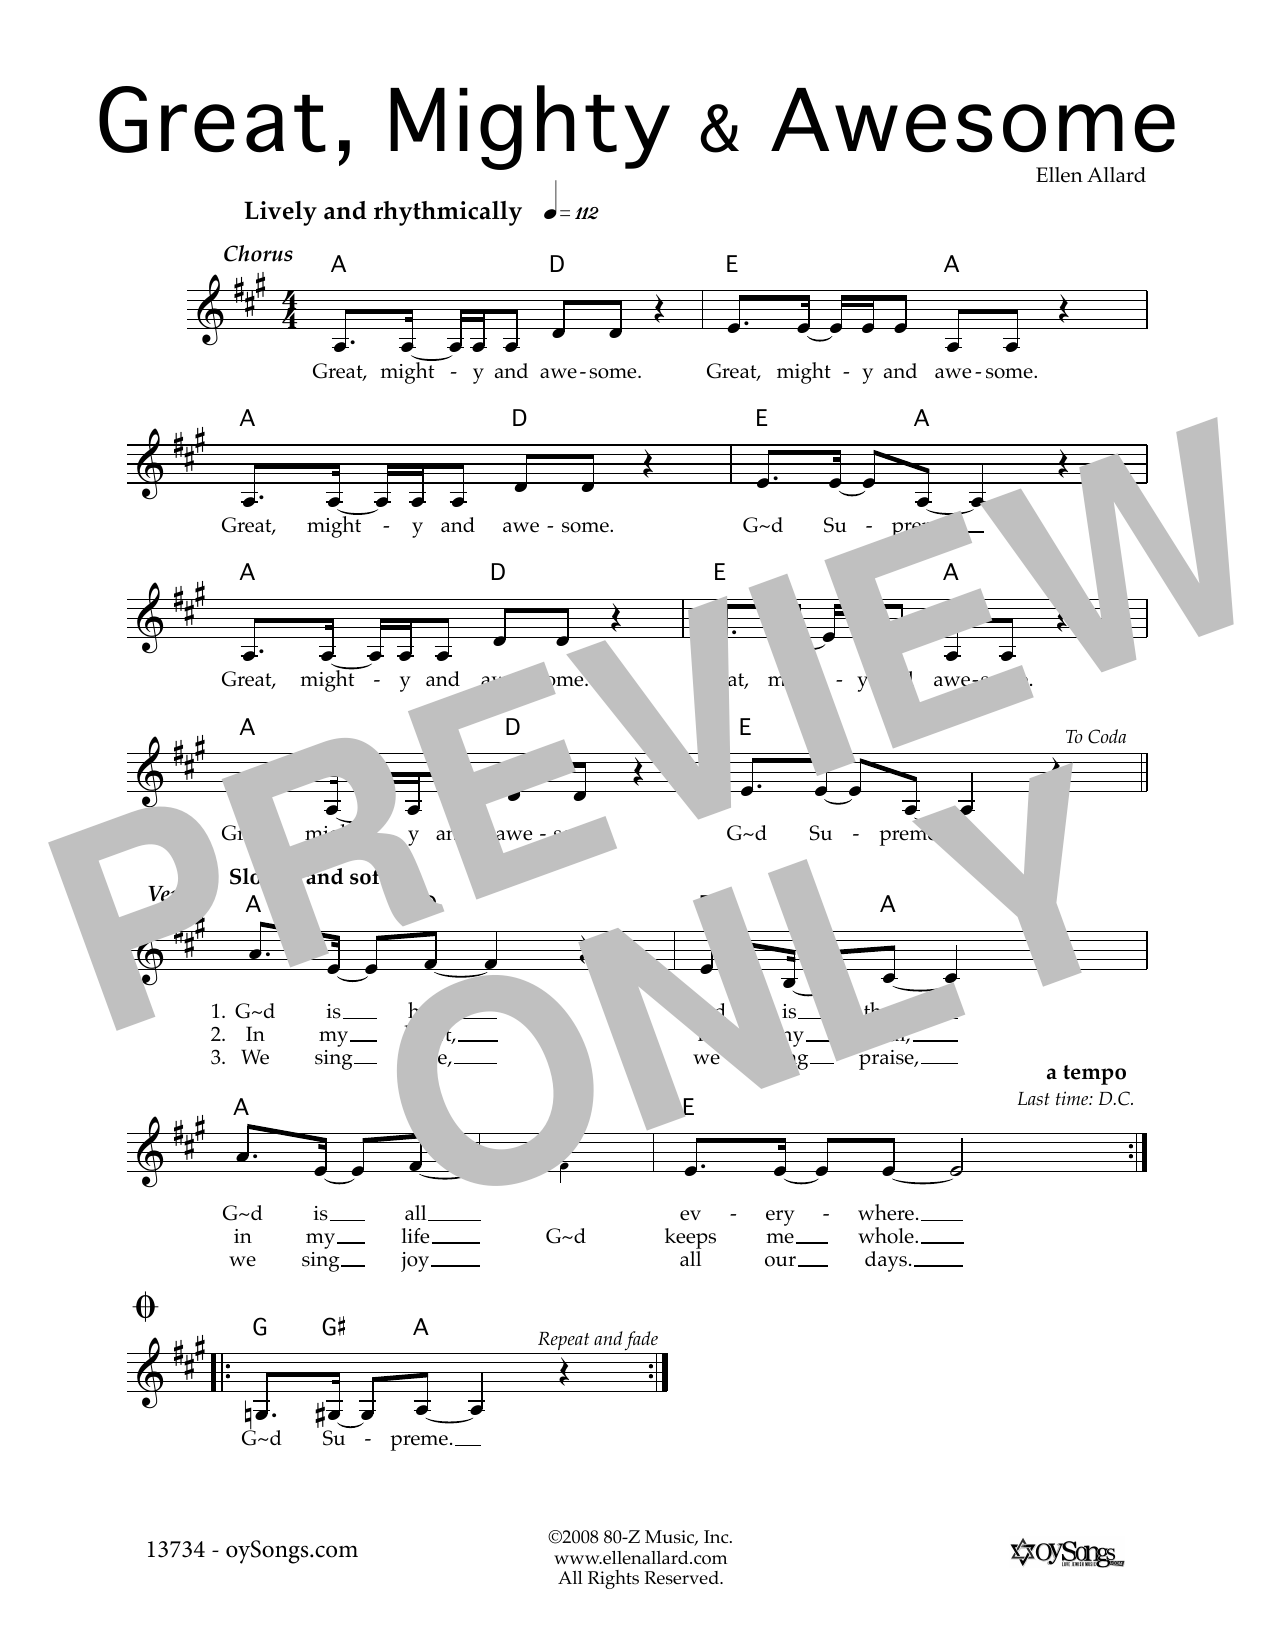 Ellen Allard Great Mighty and Awesome sheet music notes and chords. Download Printable PDF.